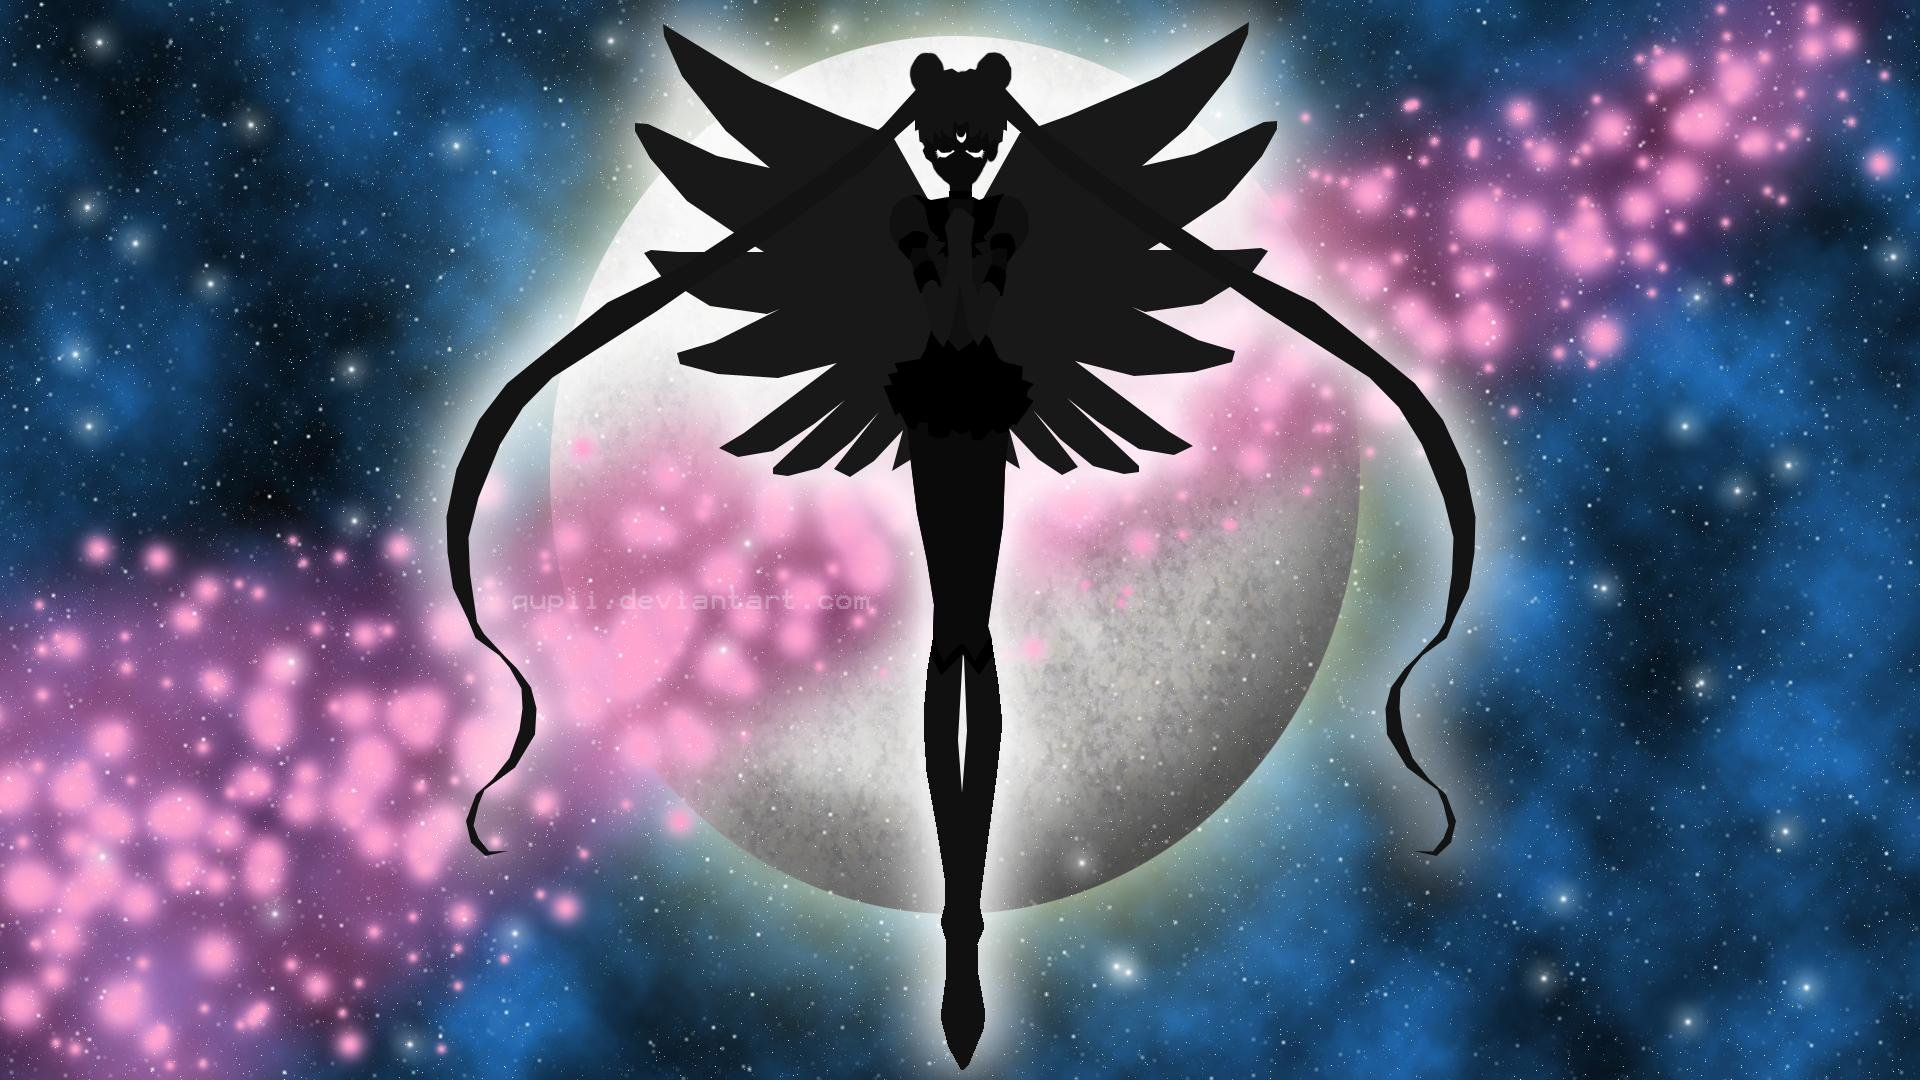 Sailor Moon Aesthetic Wallpaper 2